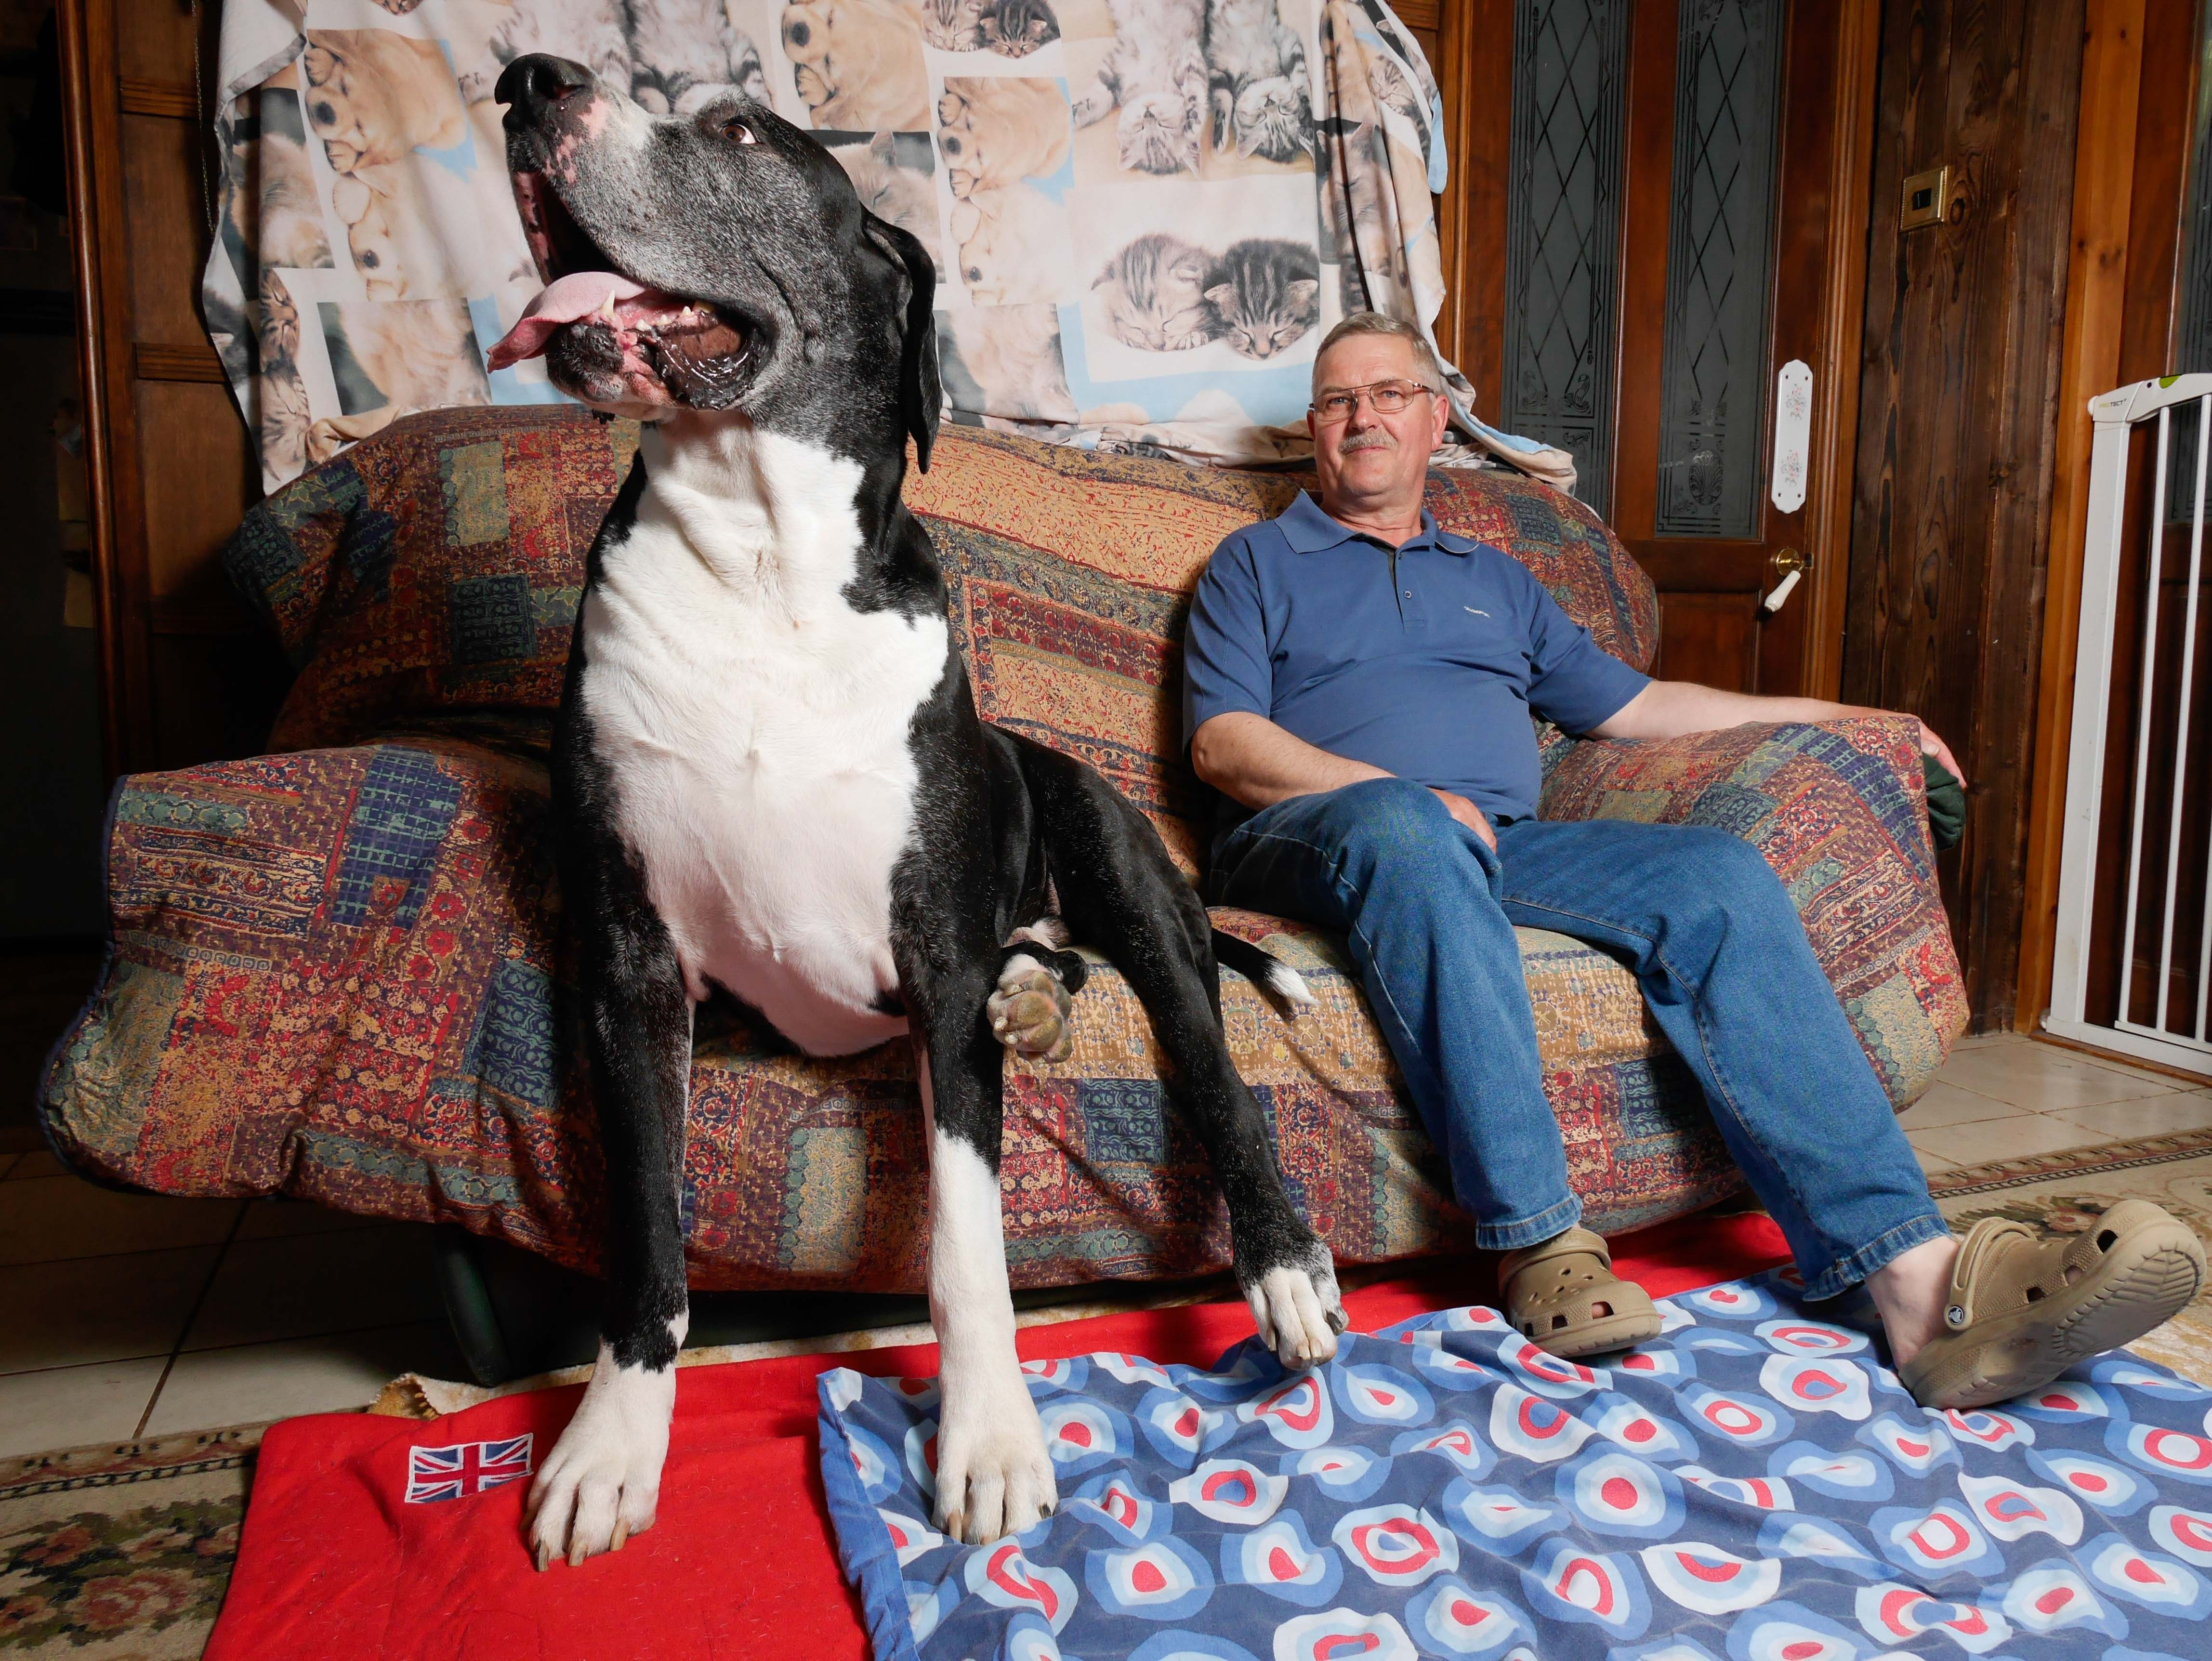 ****ONLINE EMBARGO - 00.01 WEDNESDAY 12TH AUGUST 2015**** PIC BY MERCURY PRESS (PICTURED: Yogi Bear and owner Rob on Yogi's couch) A granny was left 'in the dog house' when she told her husband they had adopted a Jack Russell – only for the puppy to grow into one of the biggest dogs in the UK. Grandmother-of-four Sue Markham fell in love with 1lb 15oz puppy Yogi but husband Robert, both 57, had said he didn't want a 'big dog'. So Robert was left stunned when the 'Jack Russell' didn't stop growing and turned into a 15-stone monster – who chomps his way through £37 worth of food every week. Yogi, known in the village as 'Bear' due to his size, turned out to be a Boston Great Dane that now has his own three-acre paddock for exercise and wears an outdoor horse coat since he was too big for any designed for